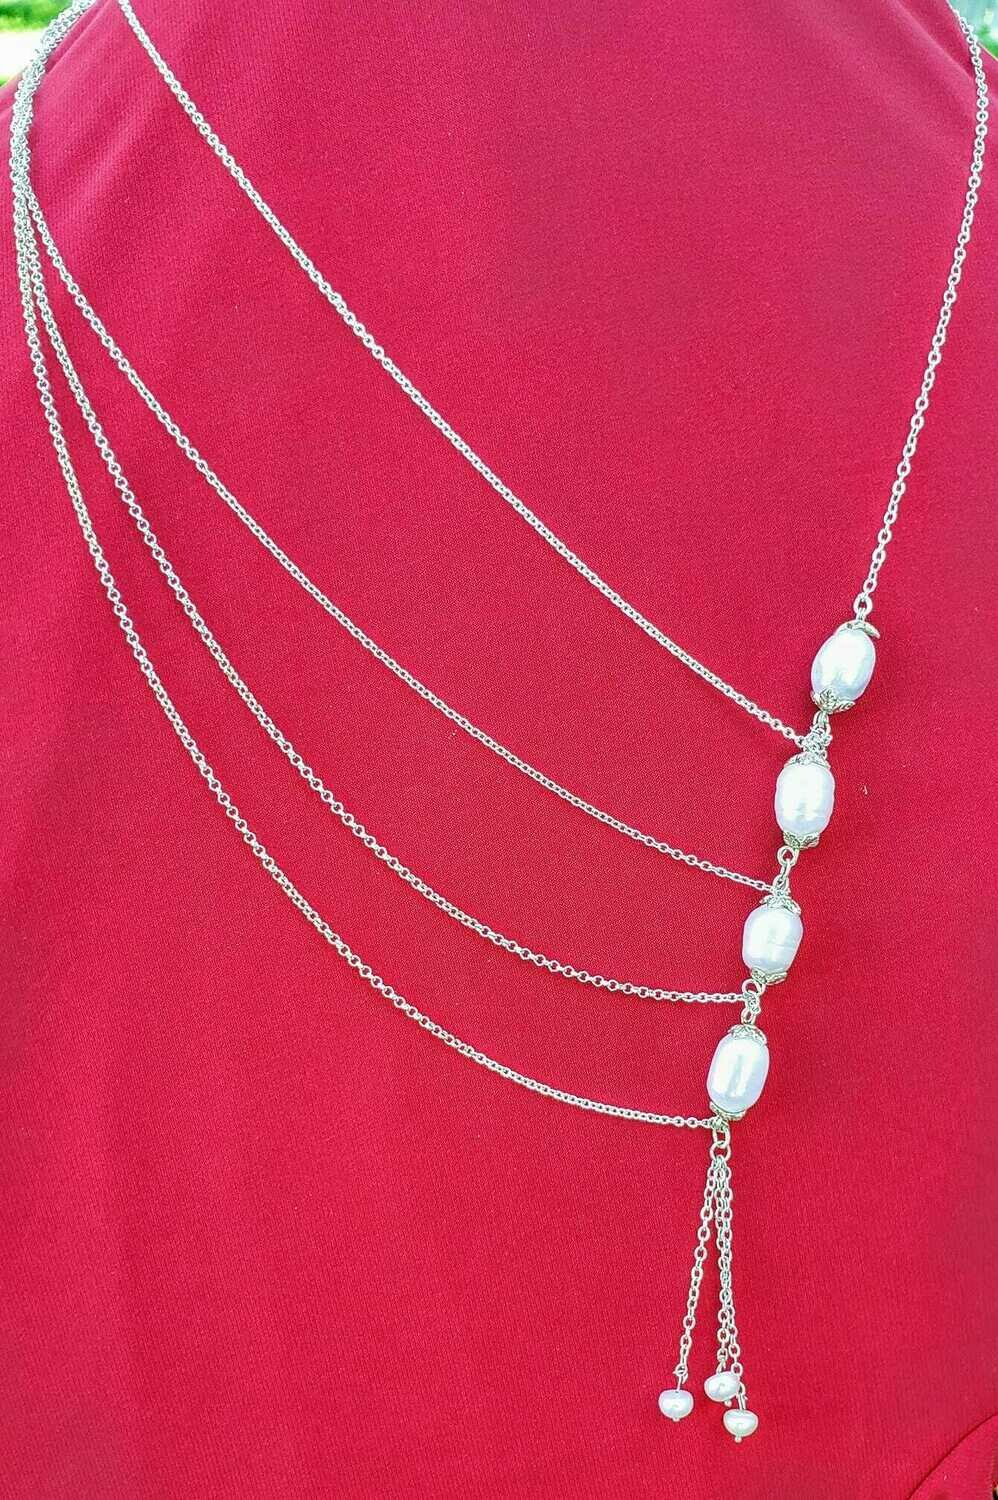 4 String Necklace